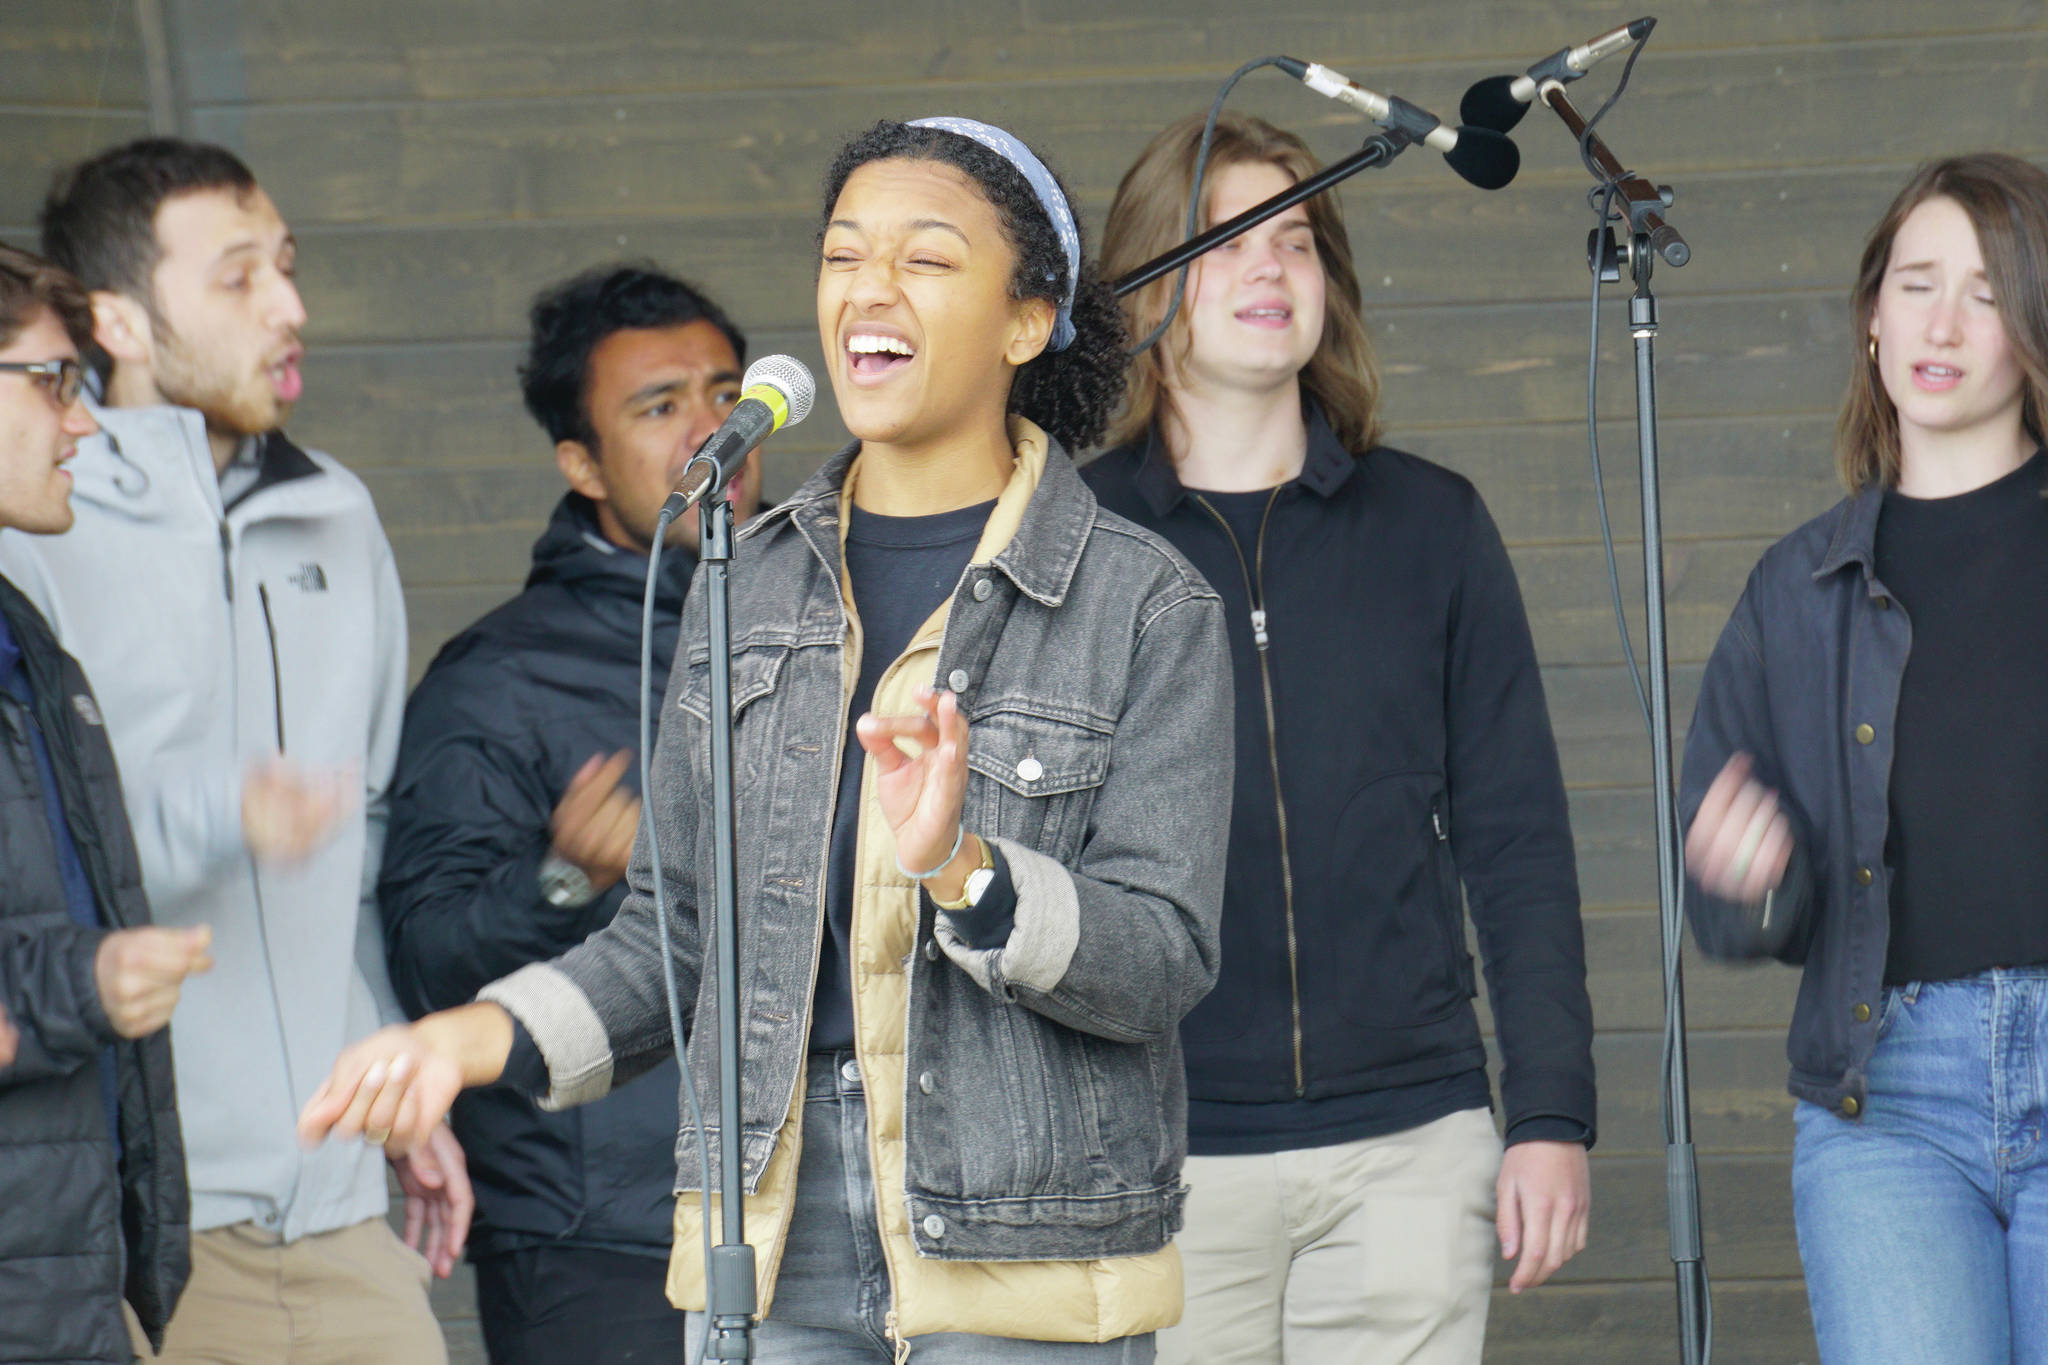 Morgan Baker, center, sings a solo with the rest of the Yale University Whiffenpoofs backing her at a concert Thursday, July 8, 2021, at the Boathouse Pavillion in Homer, Alaska. The group also did a workshop Thursday at the Homer Council on the Arts. (Photo by Michael Armstrong/Homer News)